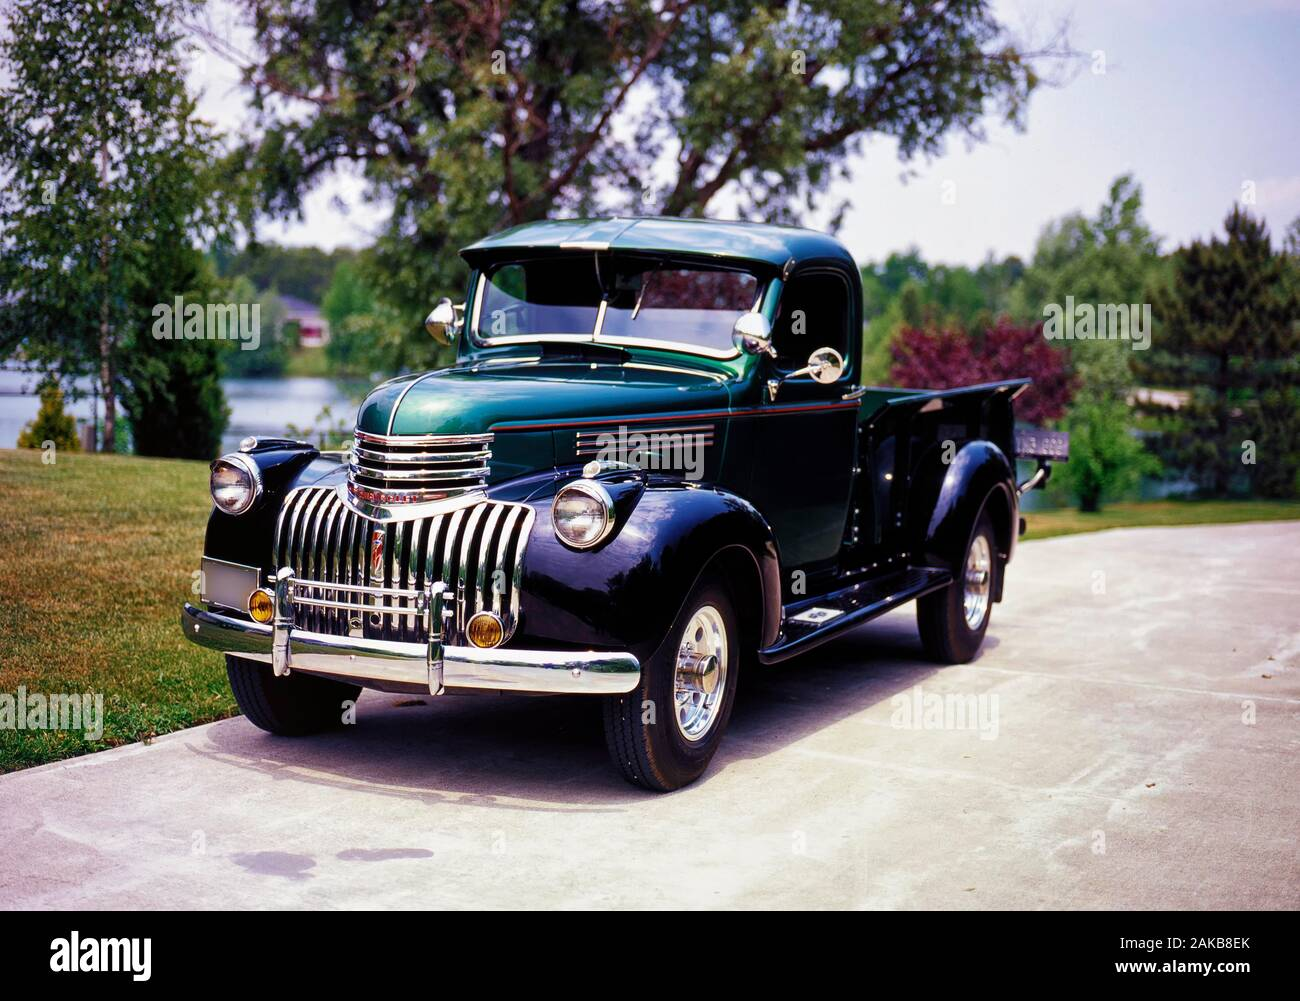 1946 Chevrolet 3/4 ton pickup truck Stock Photo